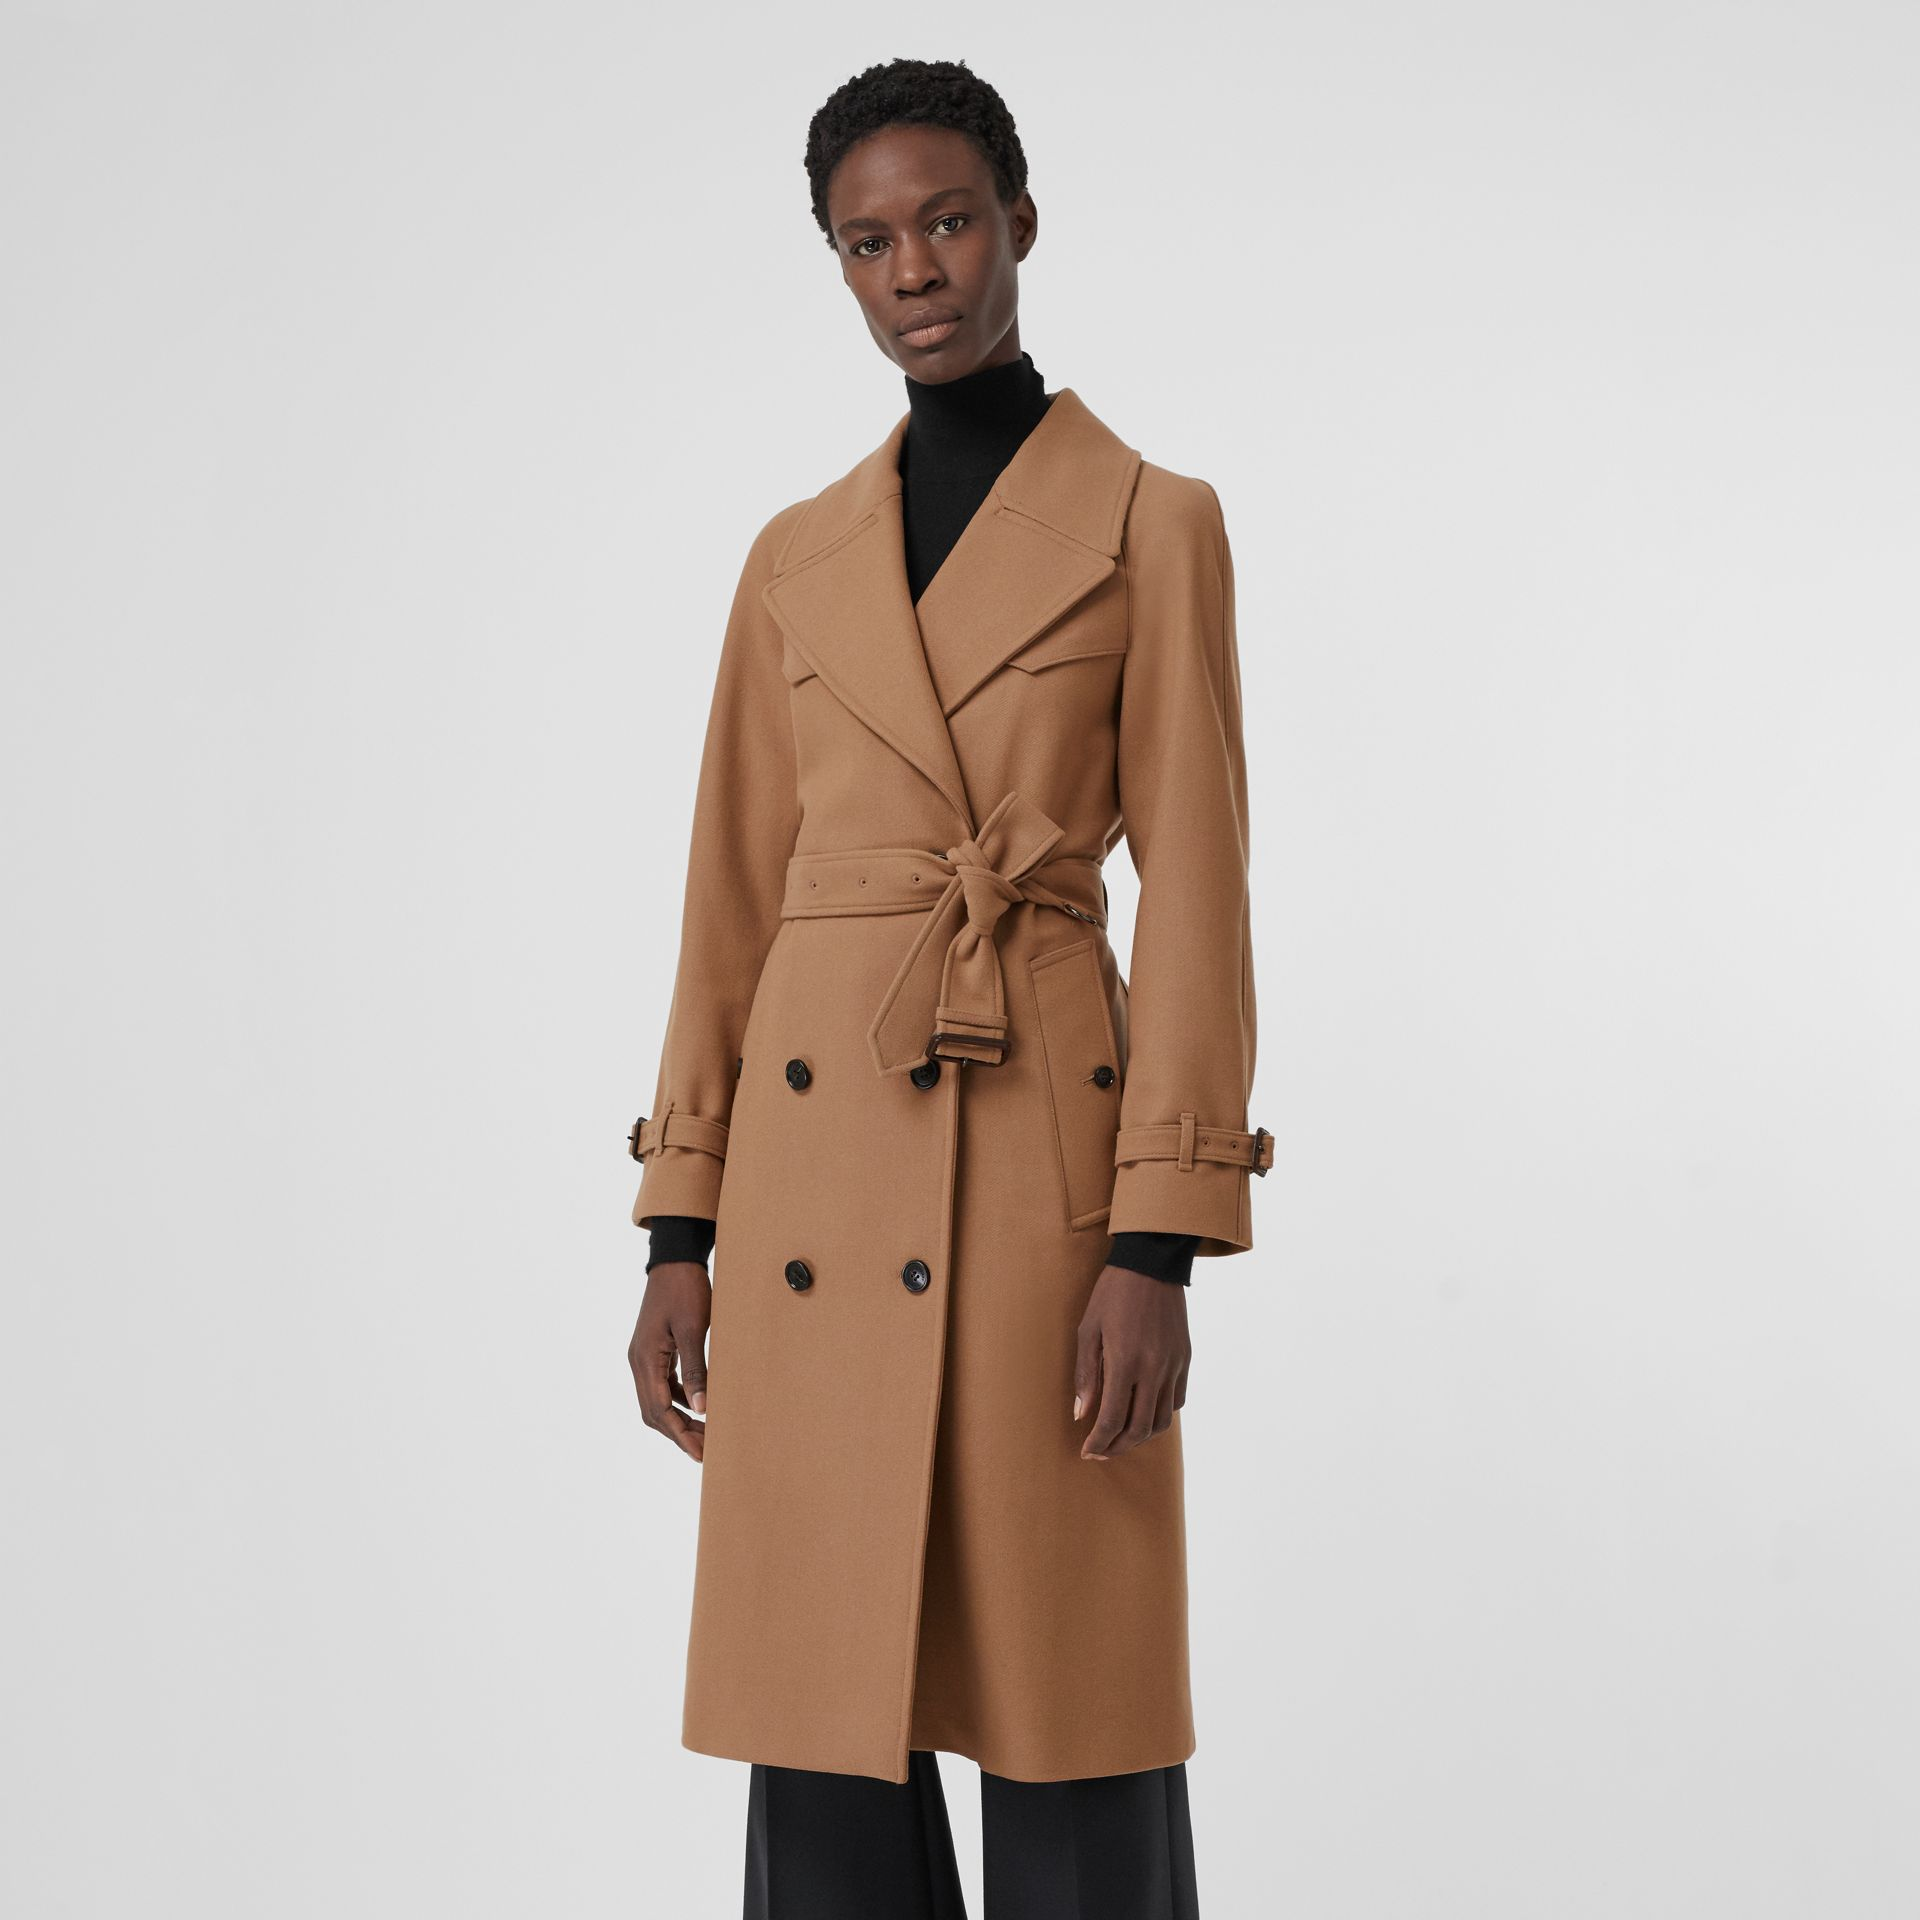 Herringbone Wool Cashmere Blend Trench Coat in Camel - Women | Burberry United Kingdom - gallery image 5